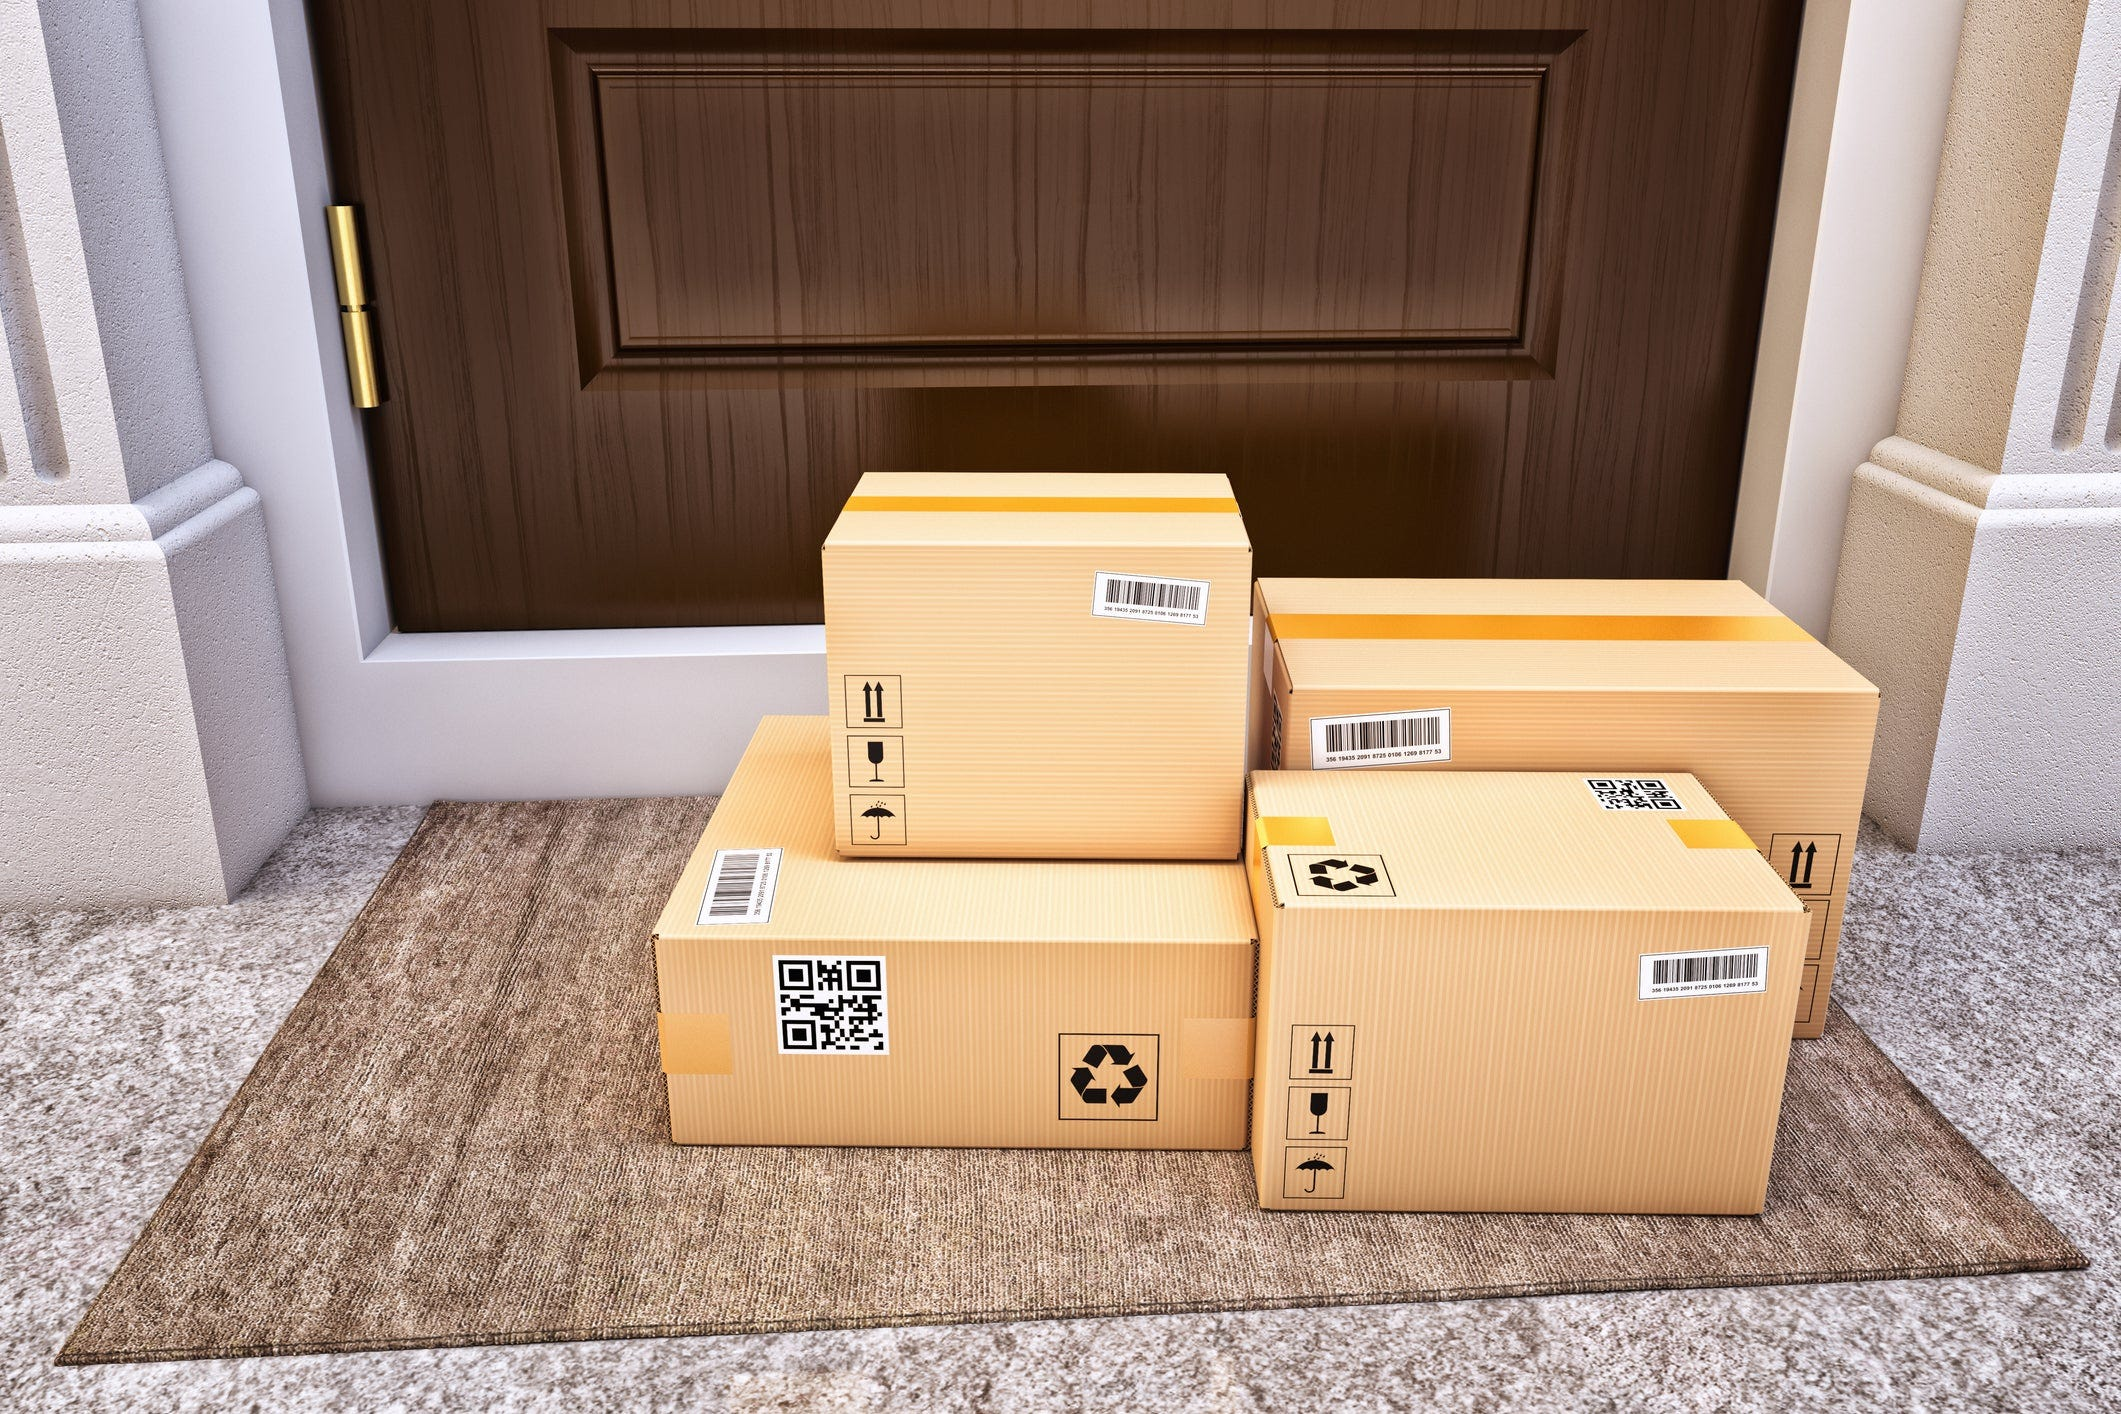 Will COVID-19 vaccine shipments delay your holiday gifts? Prepare for Shipageddon 2020 by sending packages ASAP